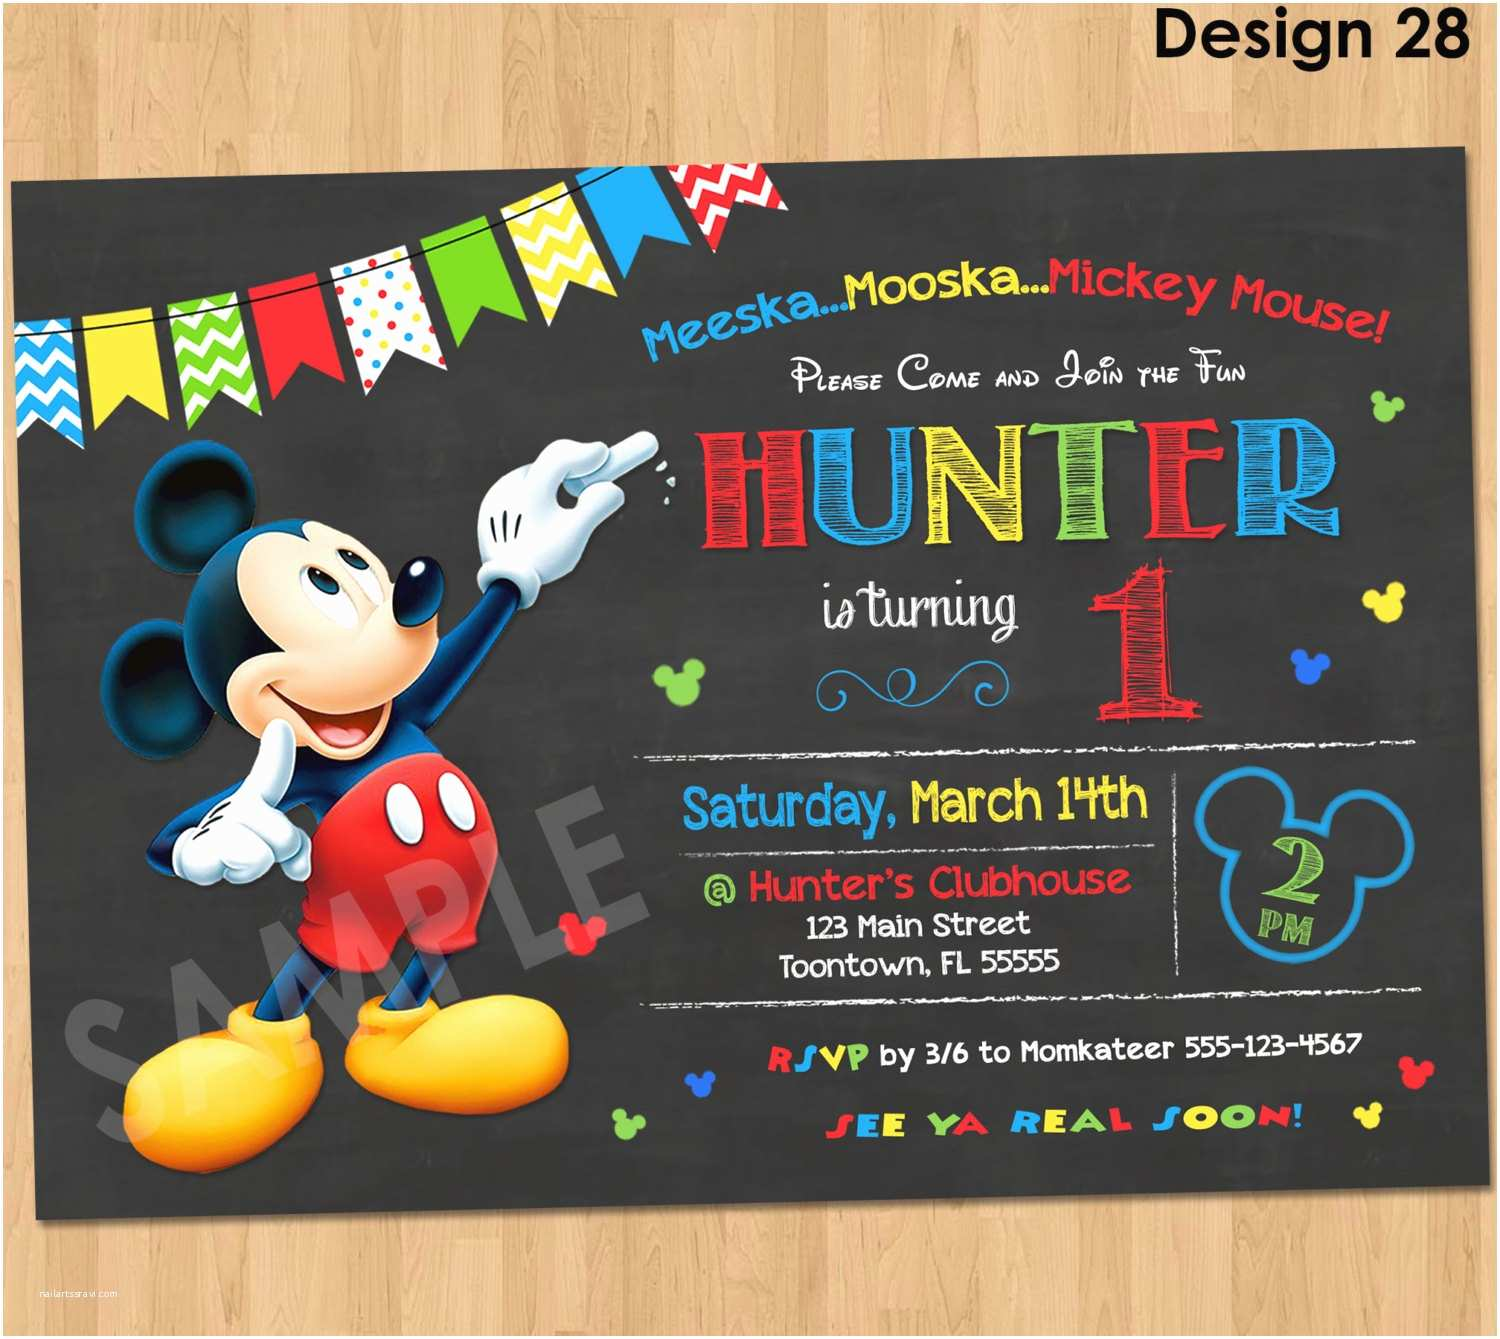 Custom Birthday Invitations Mickey Mouse Clubhouse Birthday Invitations Personalized